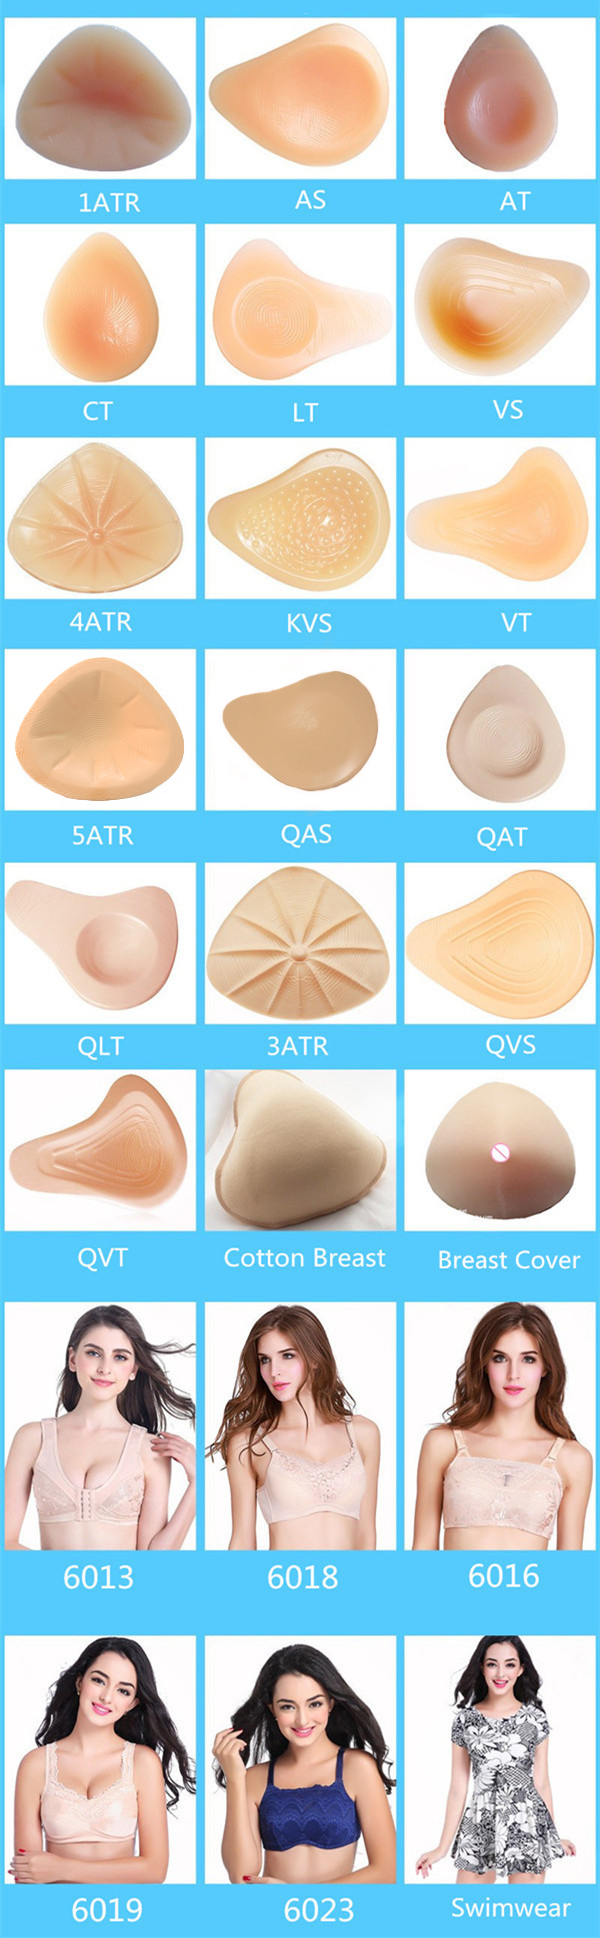 Hot Selling Triangular Shape Soft Comfortable Prosthesis Silicone Breast Form for Mastectomy Women Artificial False Boob